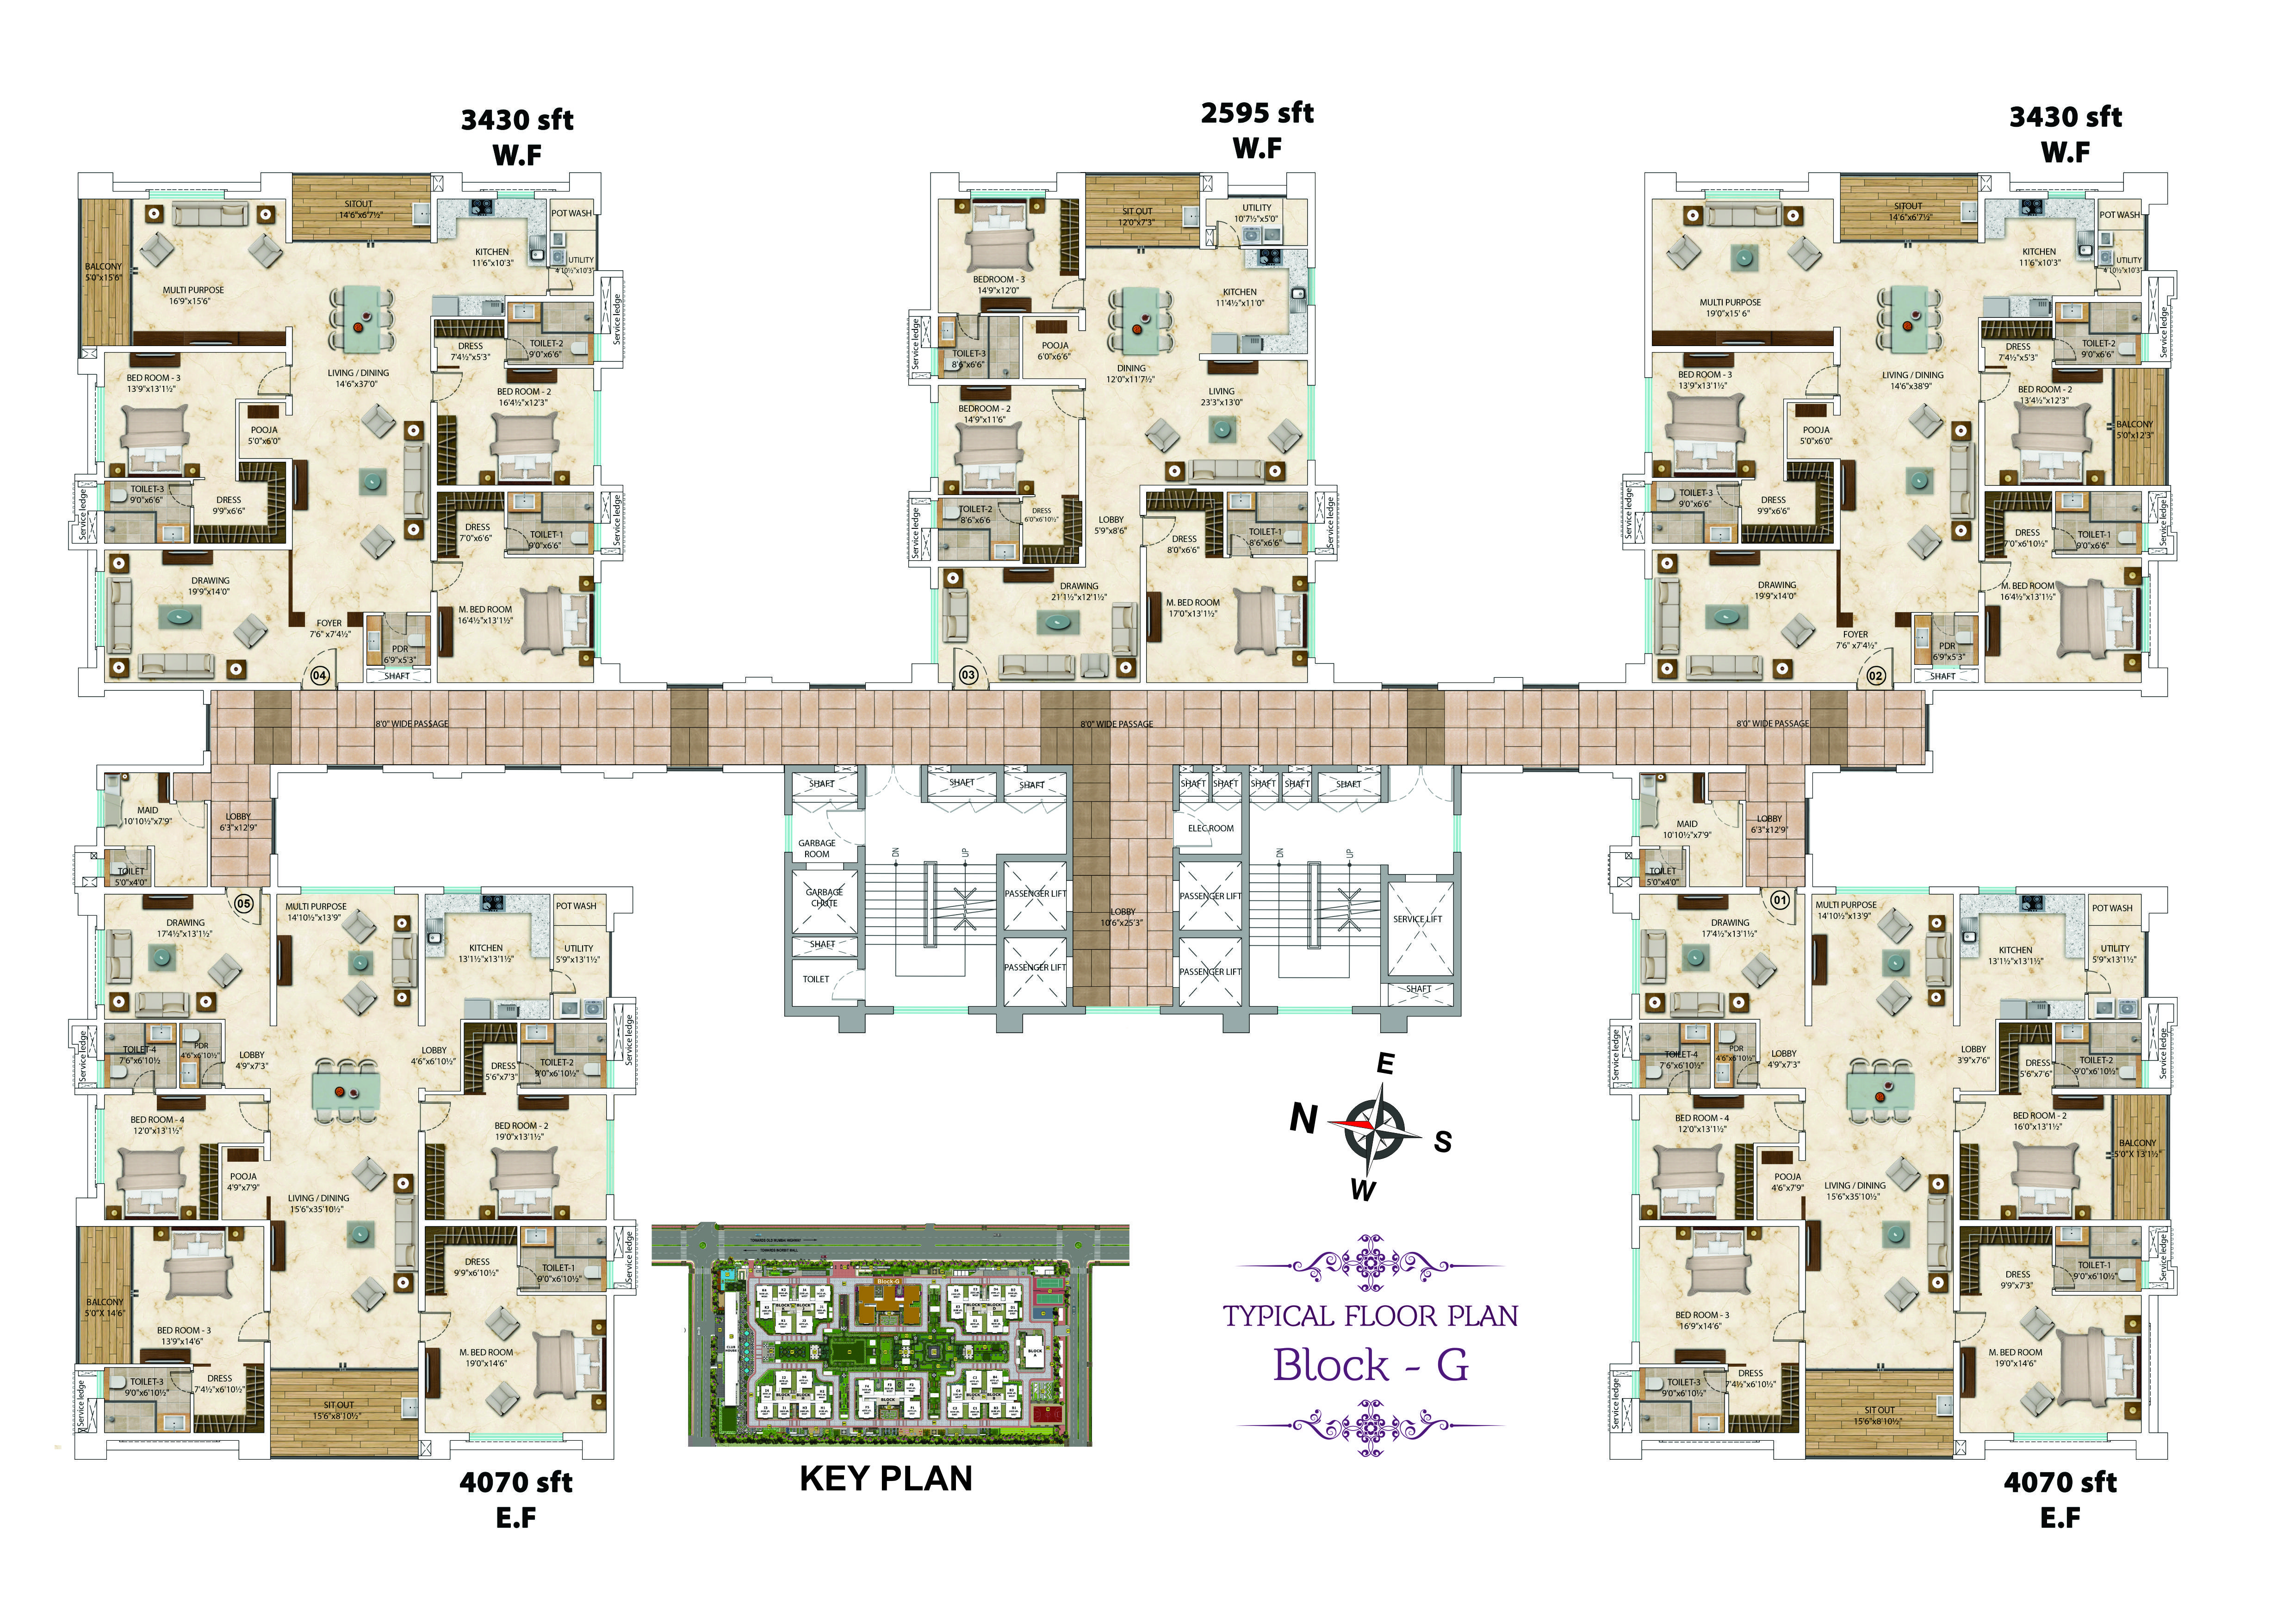 My Home Bhooja 3 Bhk Flats 3 Bhk Apartments 4 Bhk Flats 4 Bhk Apartments Investment Properties Real Estate Investment Upcoming Residential Project Luxury Flats